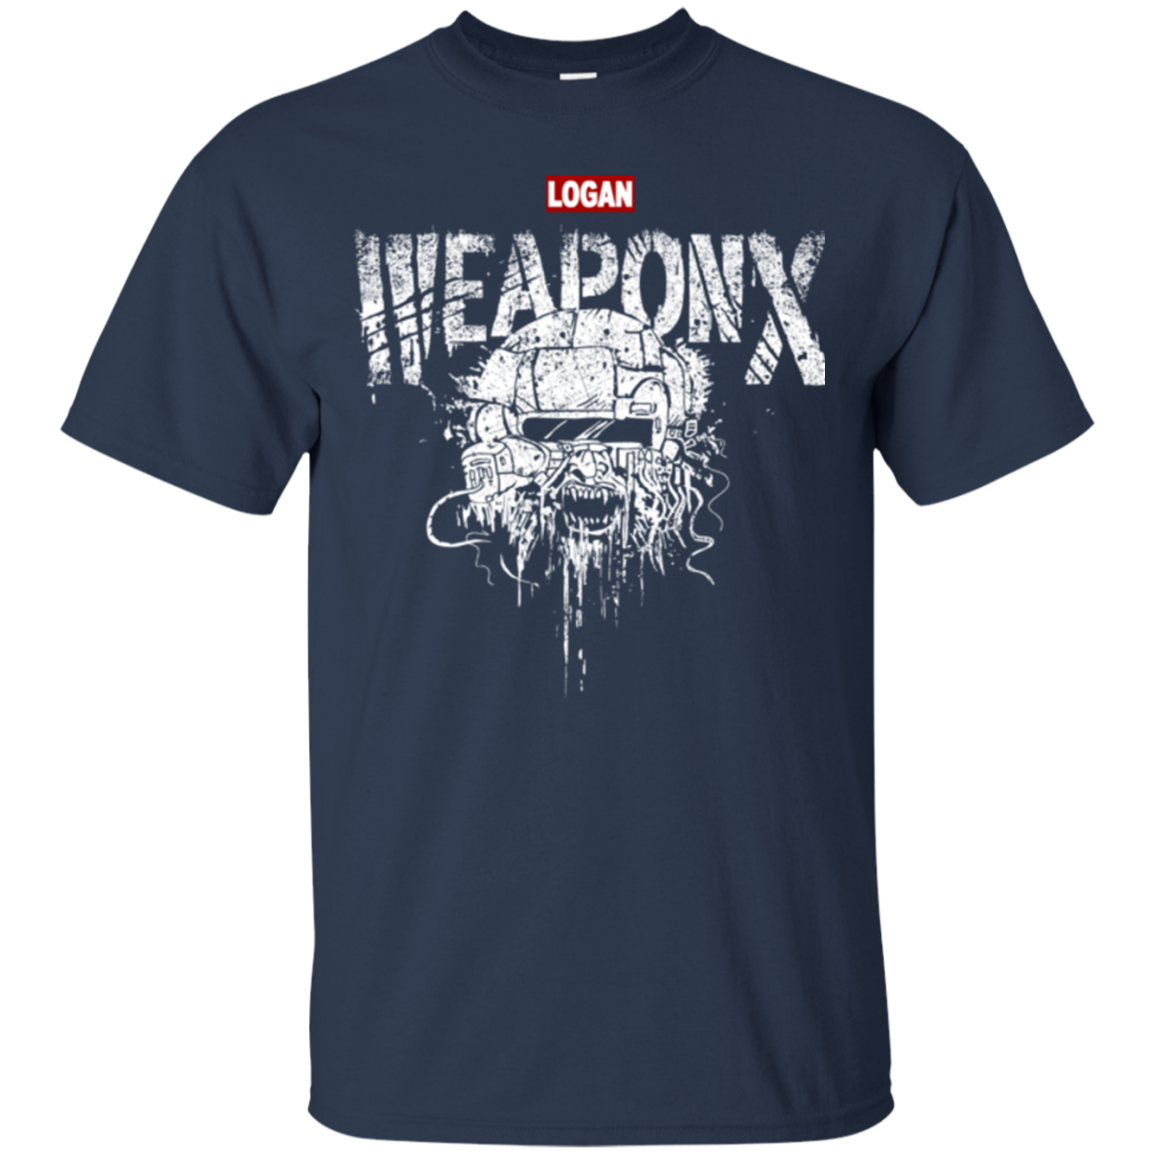 The Weapon T-Shirt